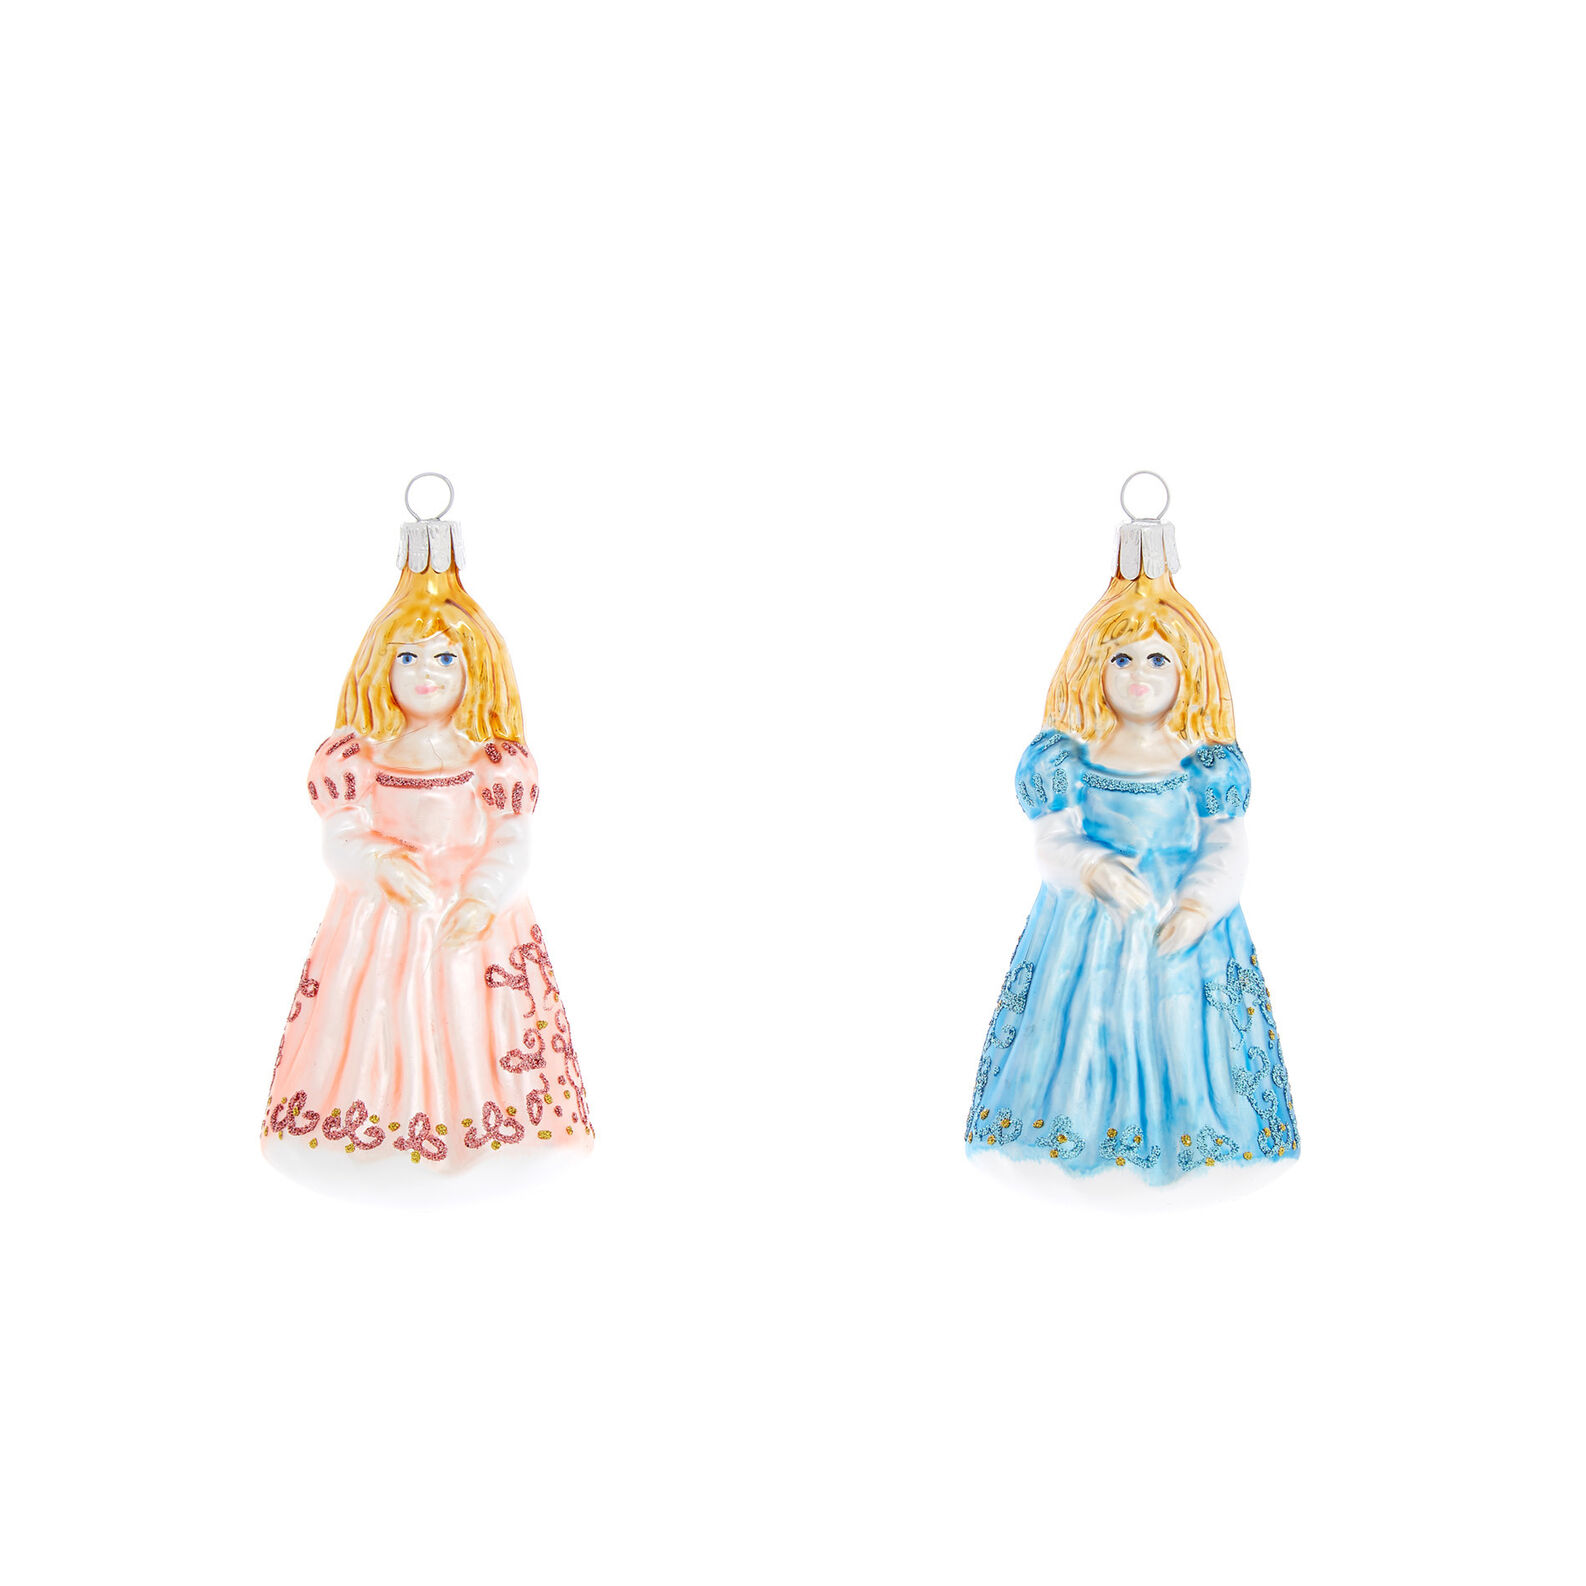 Princess decoration in hand-blown glass